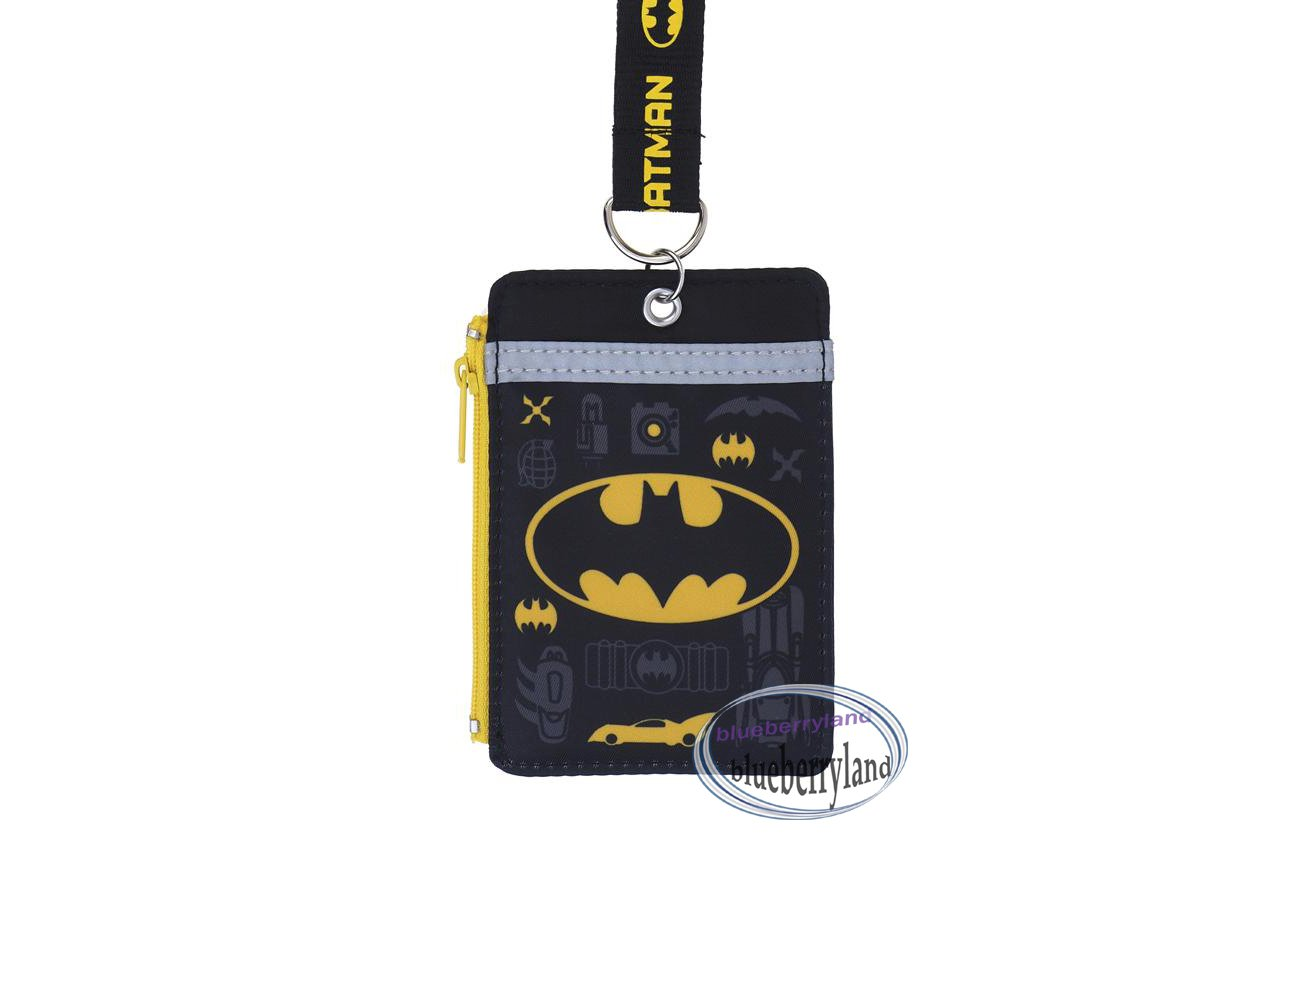 Batman Lanyard Name Tag Card Holder with Neck Strap school work bus pass ID tags P9